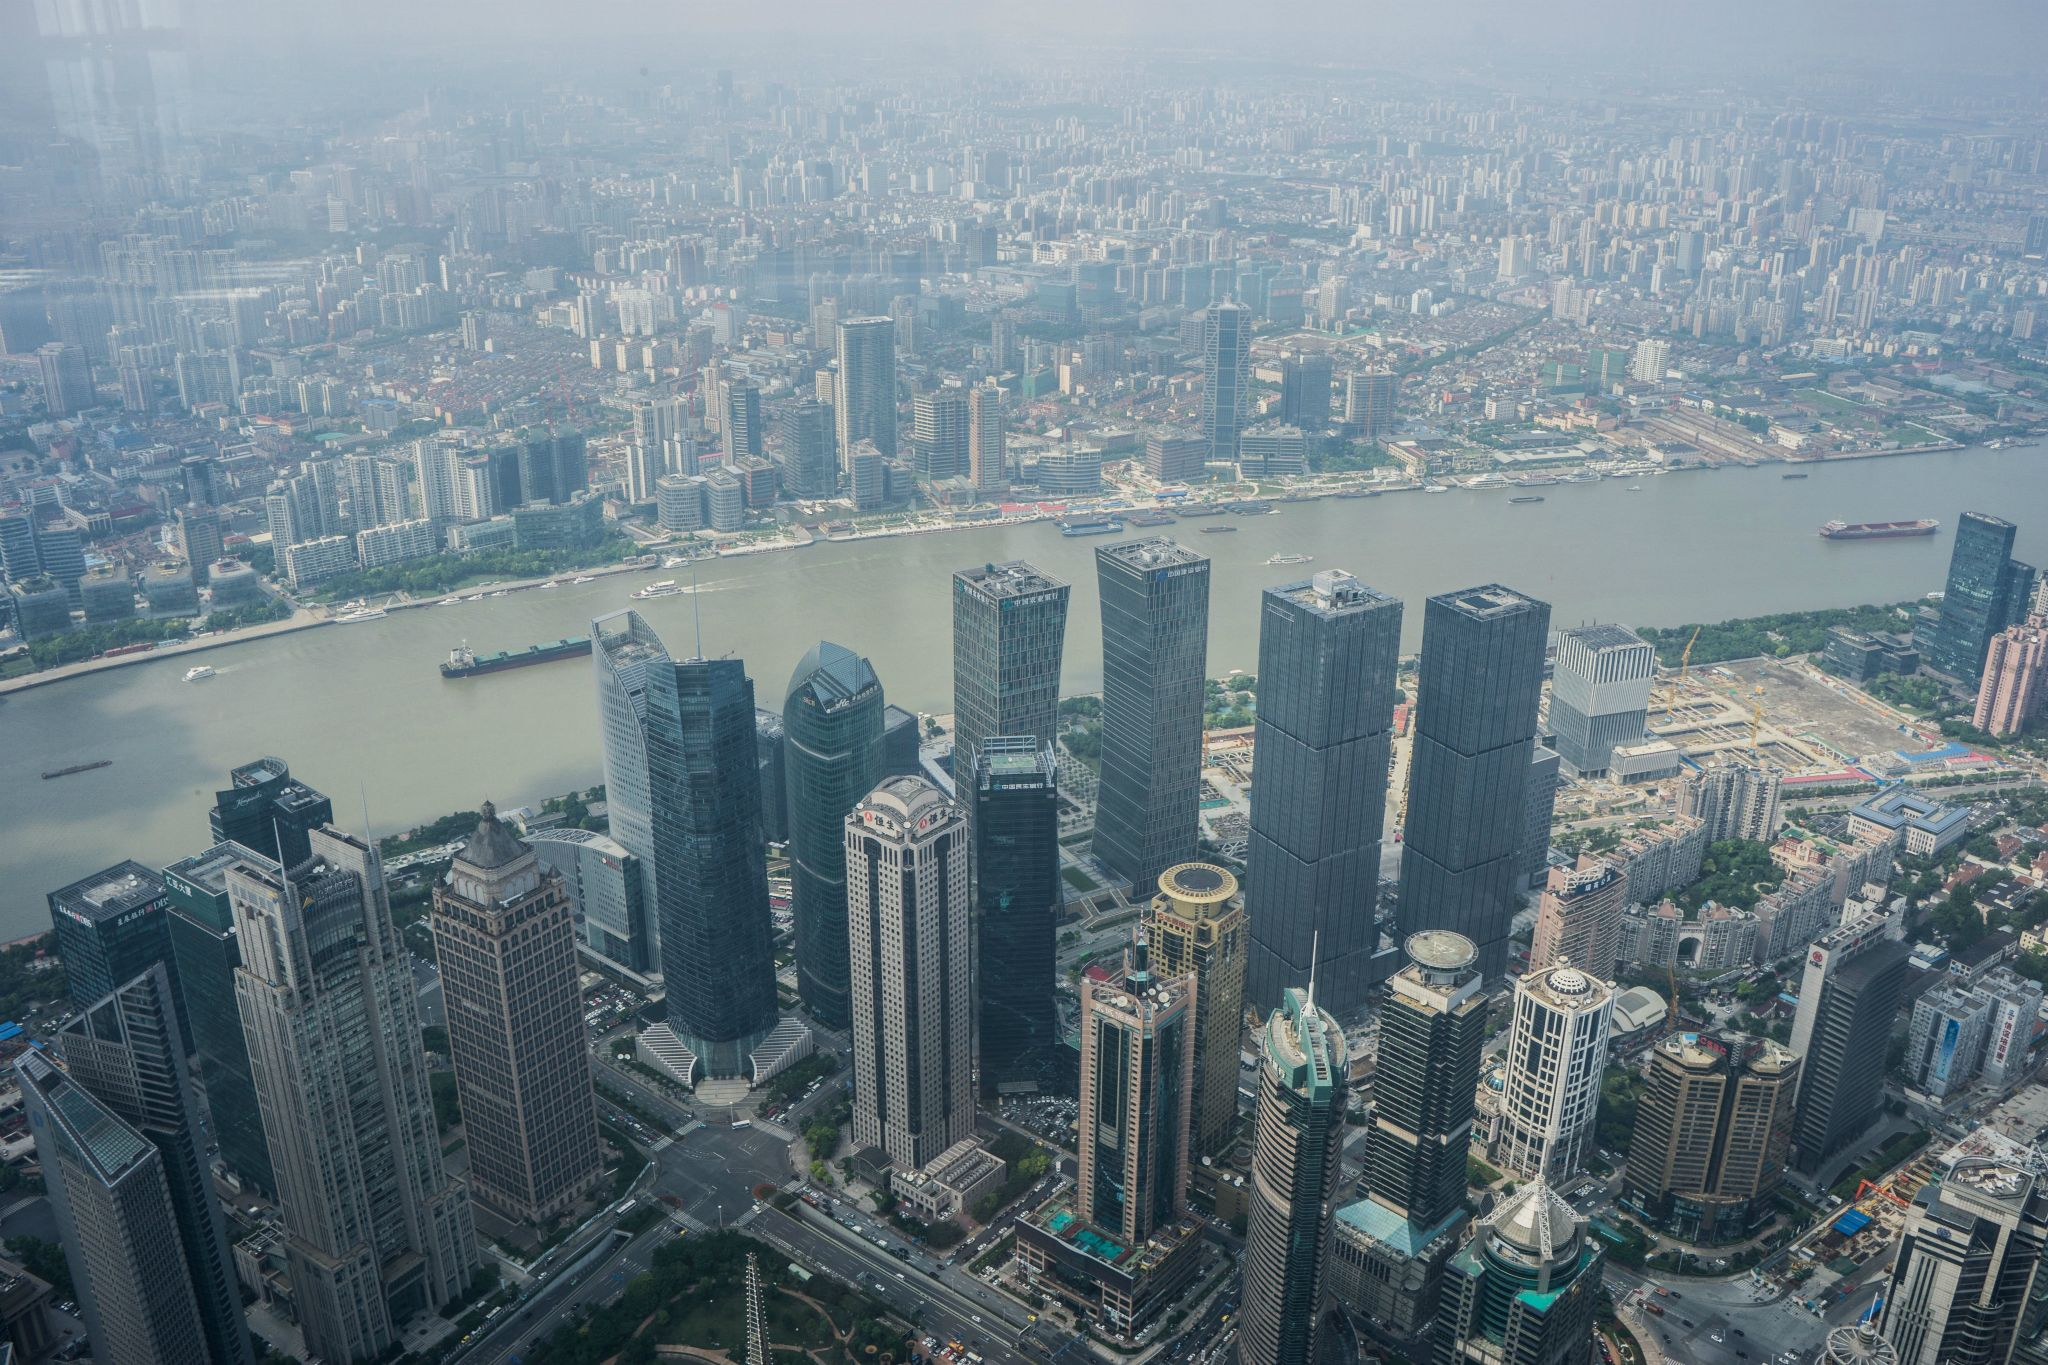 View from Shanghai Tower